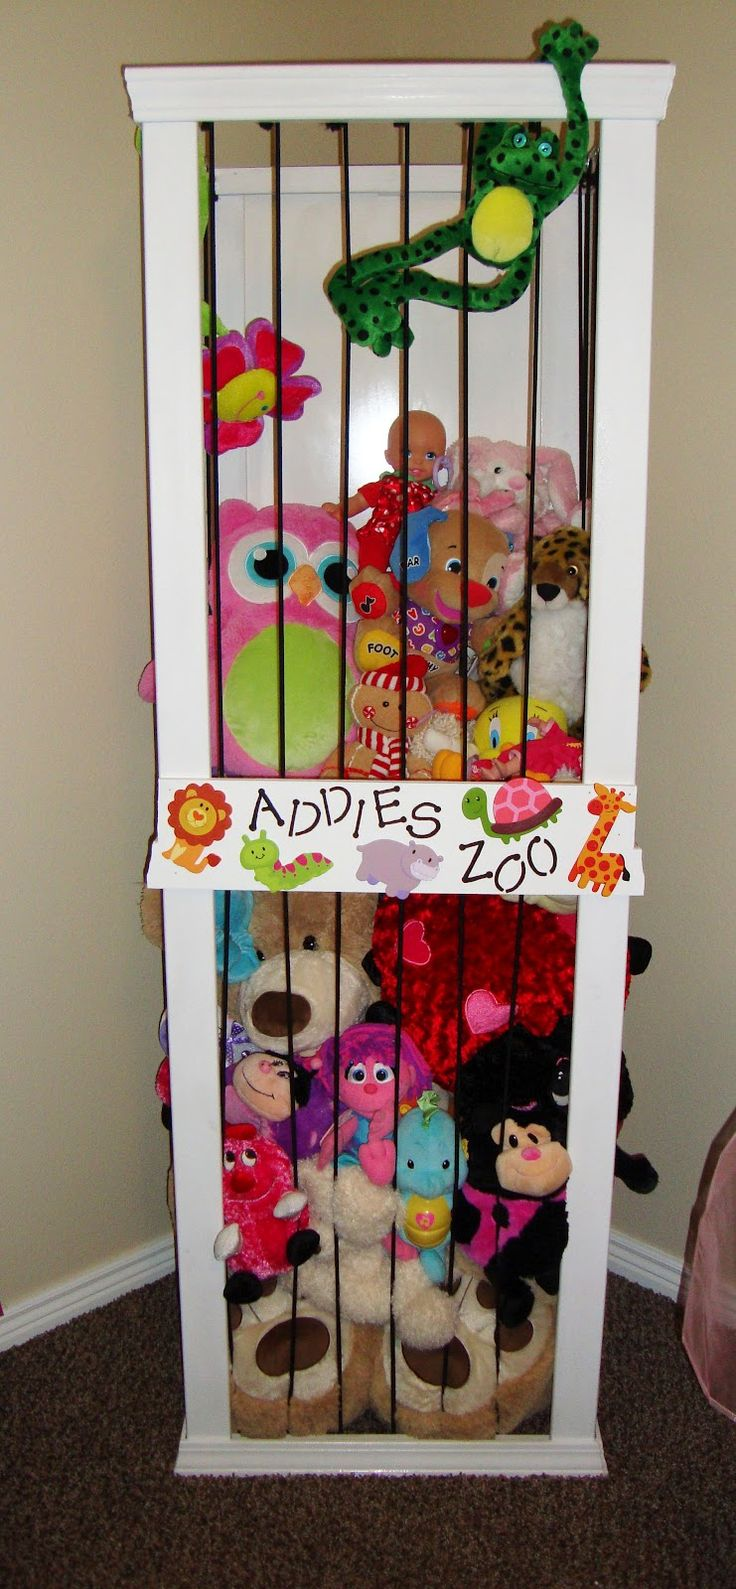 Stuffed animal storage (bungee cords). Smart! we soooo need to make this!!! lol  I wonder if we could paint it brown and make it Mater's junkyard?